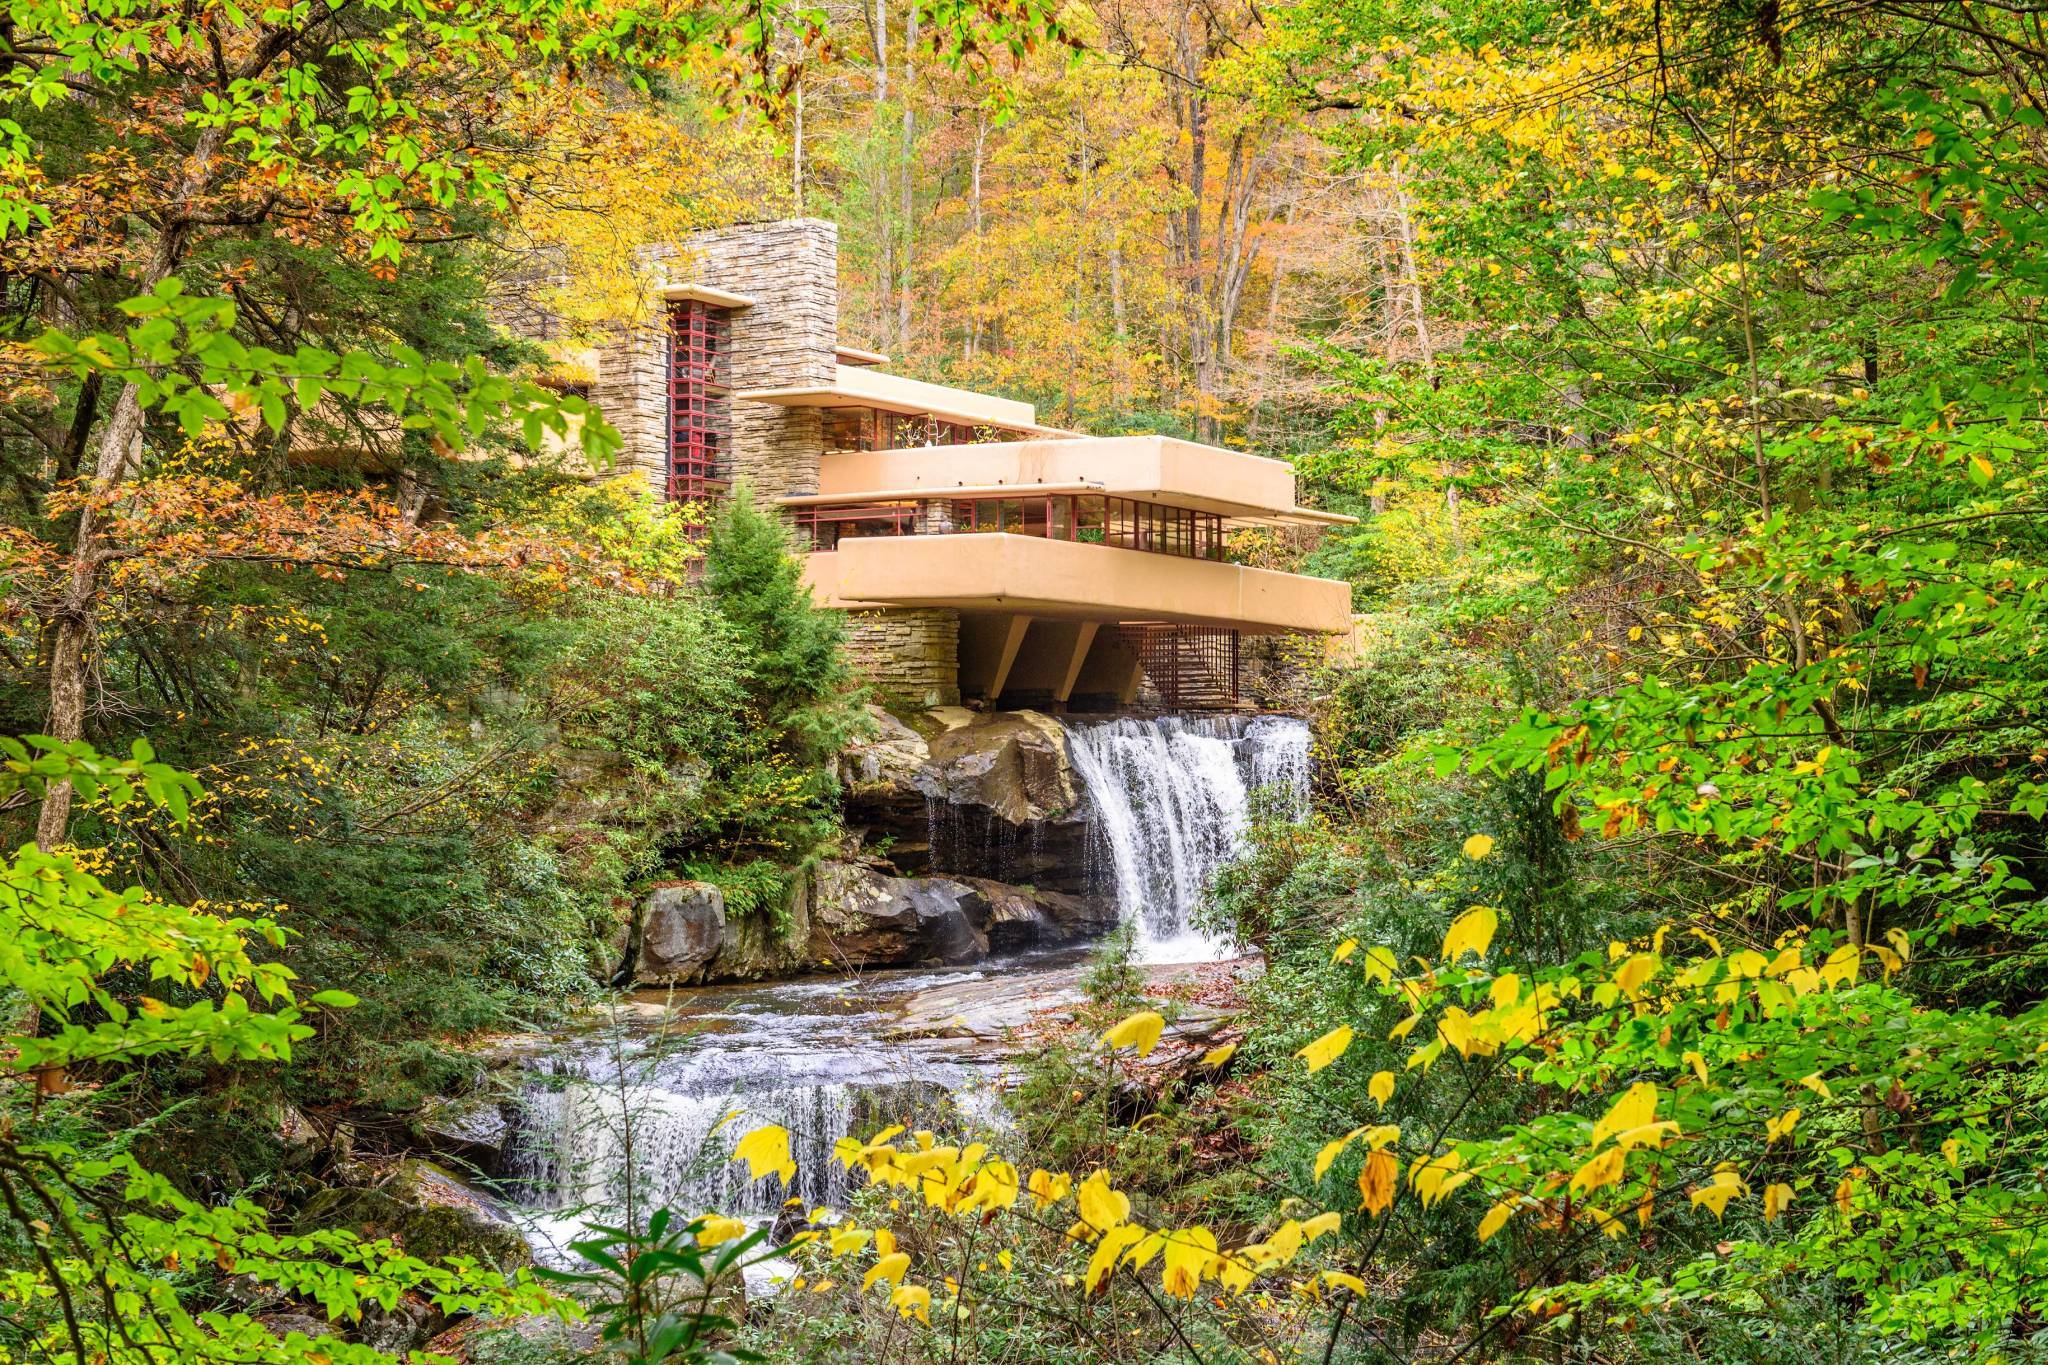 Weekly virtual tours of Frank Lloyd Wright buildings